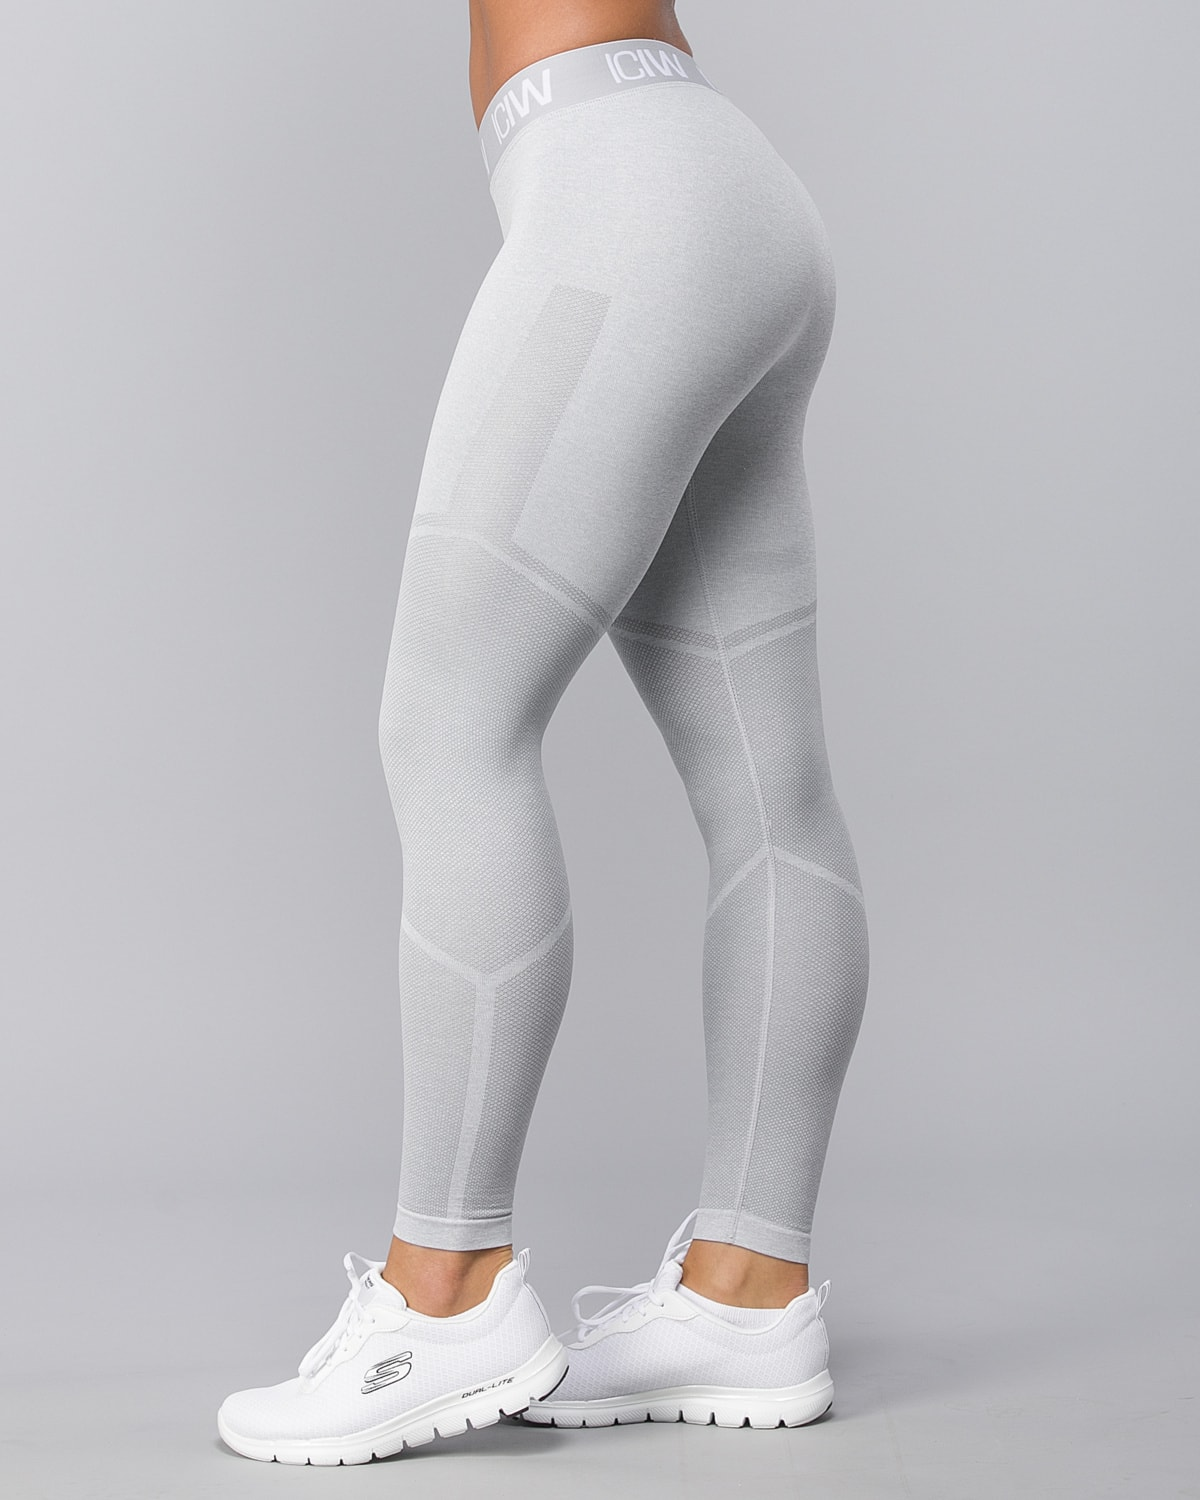 Icaniwill-Seamless Tights–Light Grey4